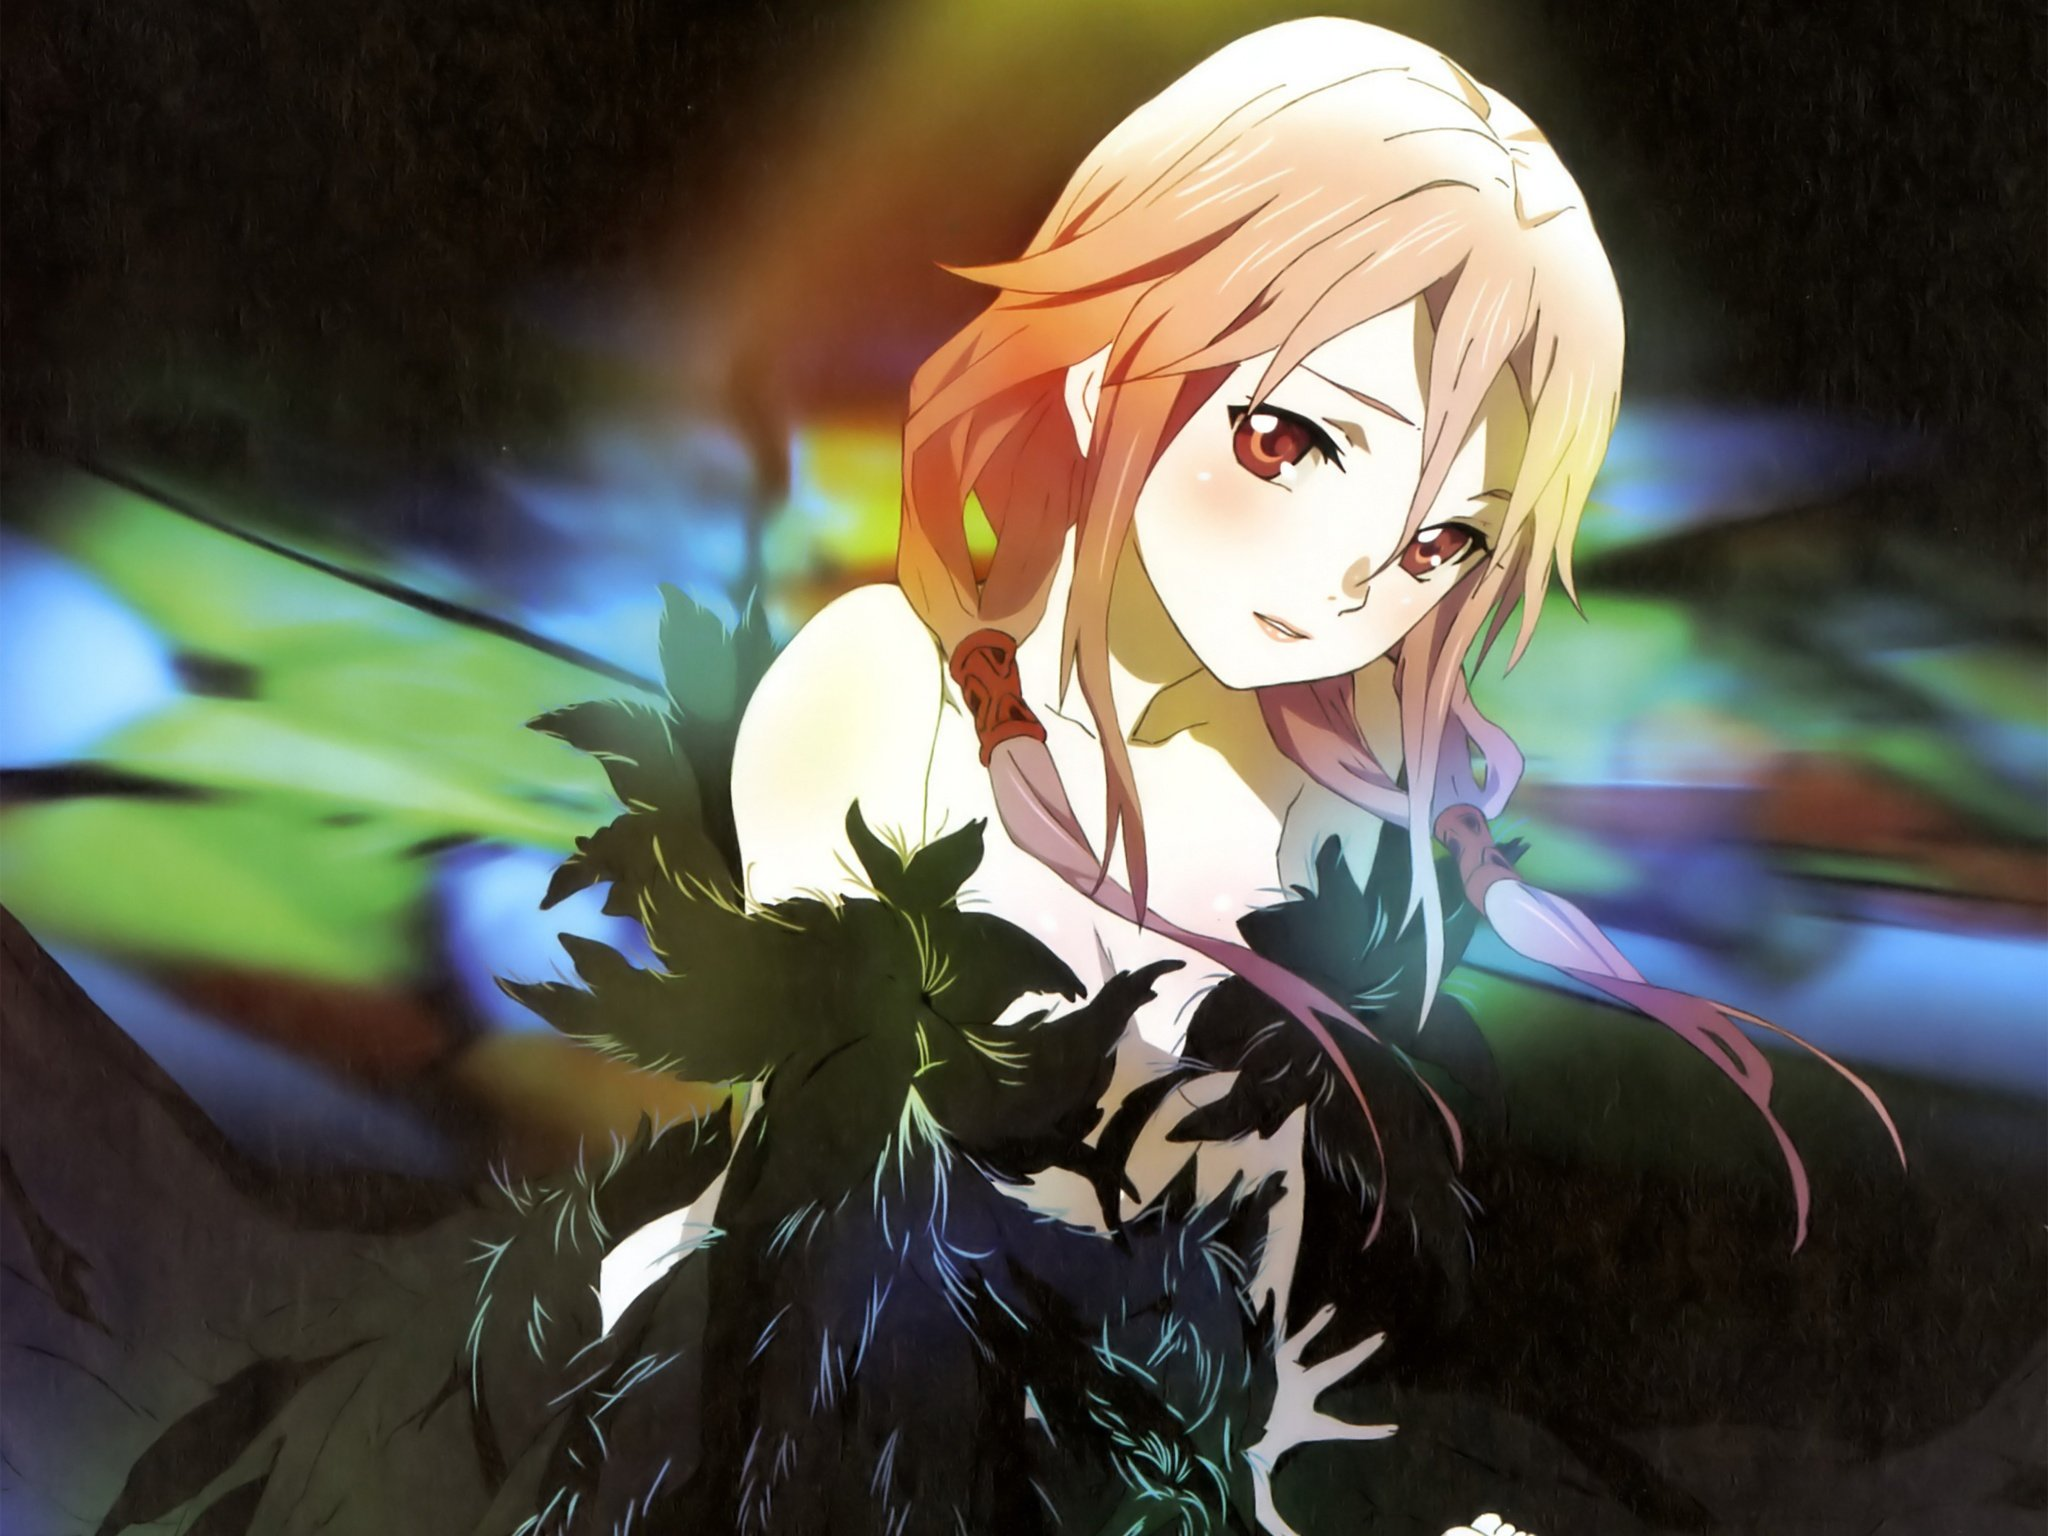 High resolution Inori Yuzuriha hd 2048x1536 background ID:254453 for PC